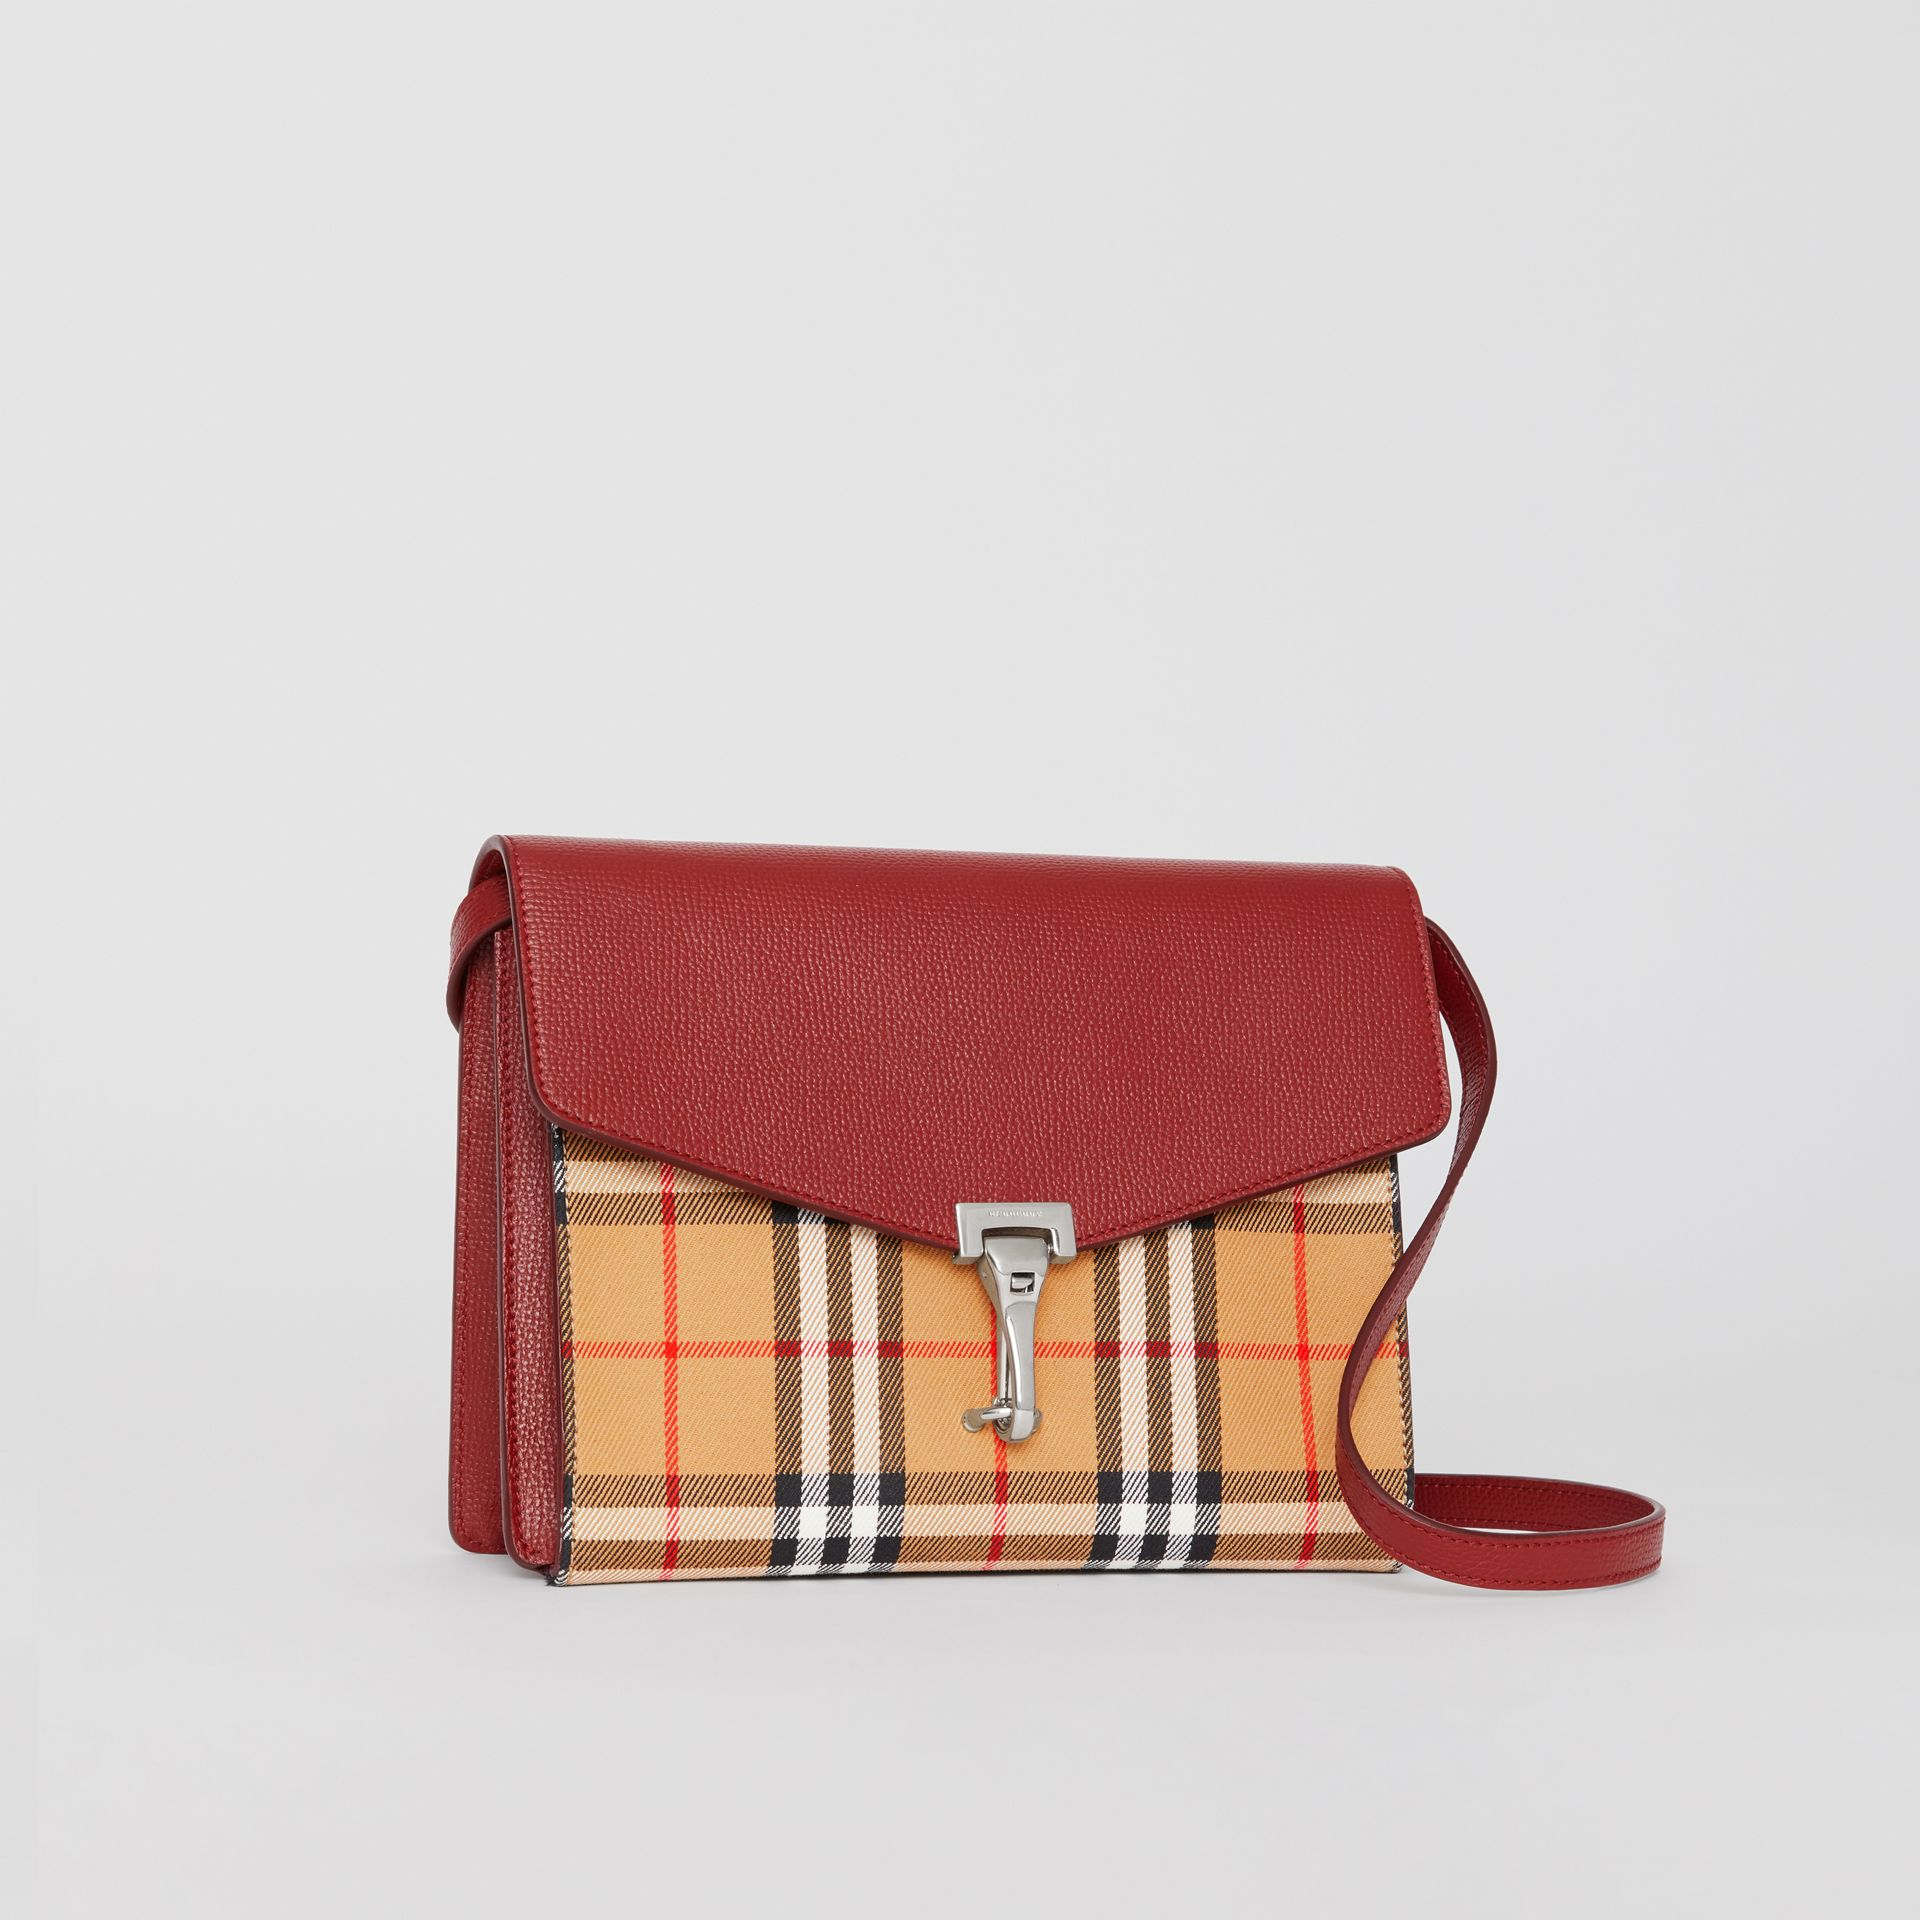 Small Vintage Check and Leather Crossbody Bag in Crimson - Women | Burberry Australia - gallery image 6